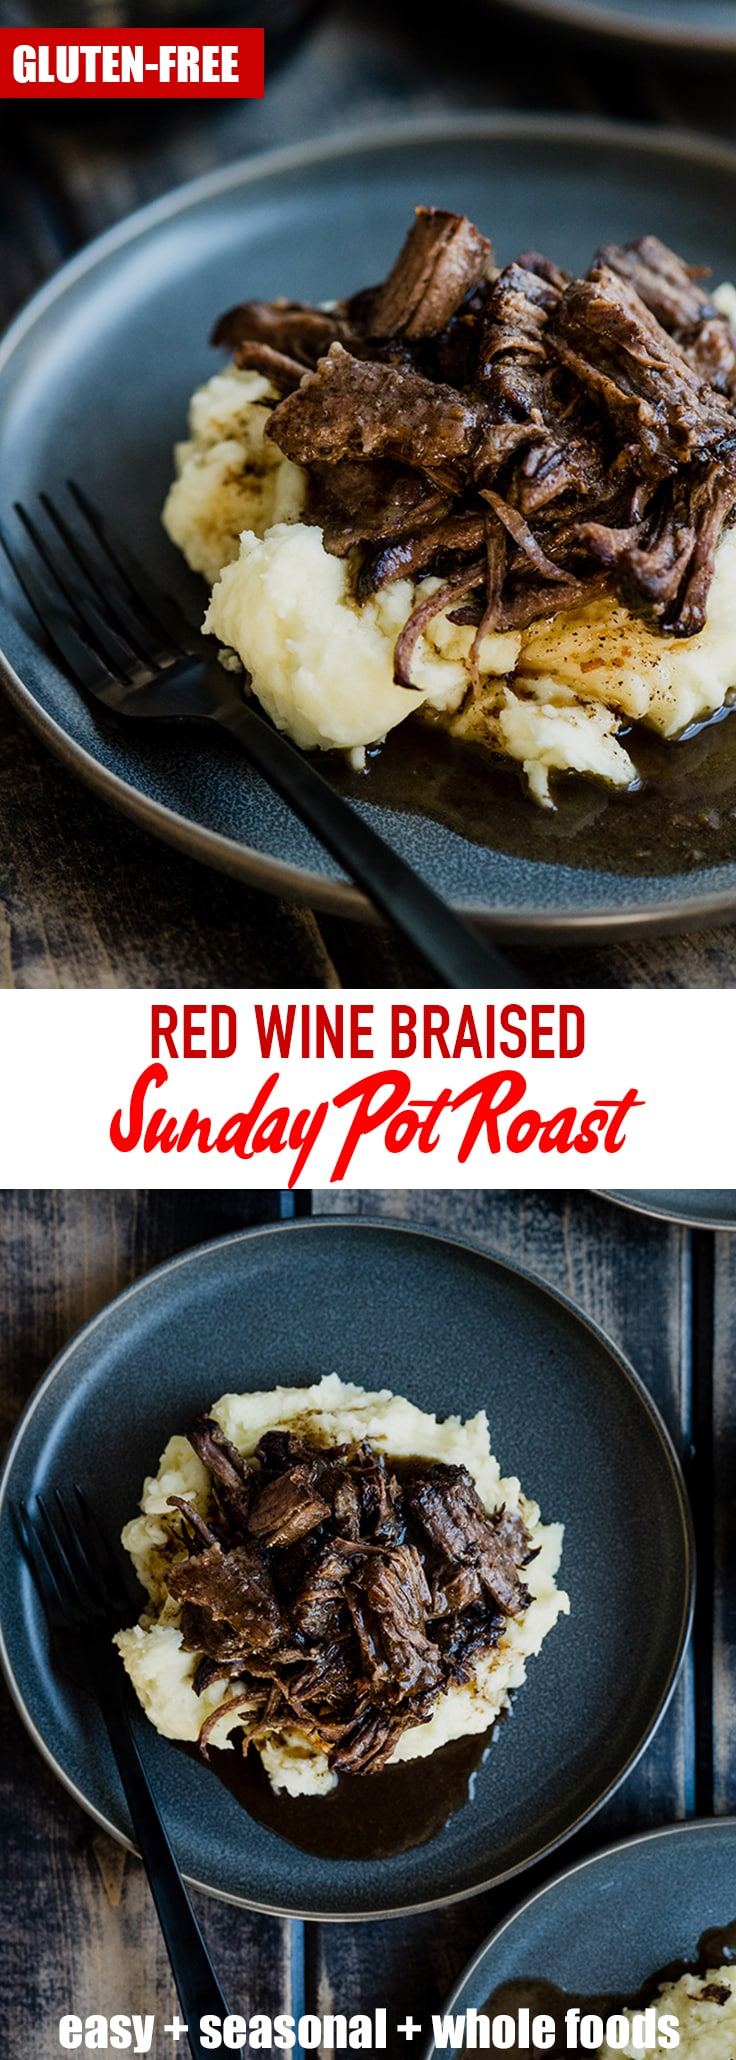 This braised red wine pot roast is an easy one pot recipe the entire family will love! It's perfect over buttery mashed potatoes with a simple side dish. Braised pot roast with red wine - it's what's for Sunday dinner!